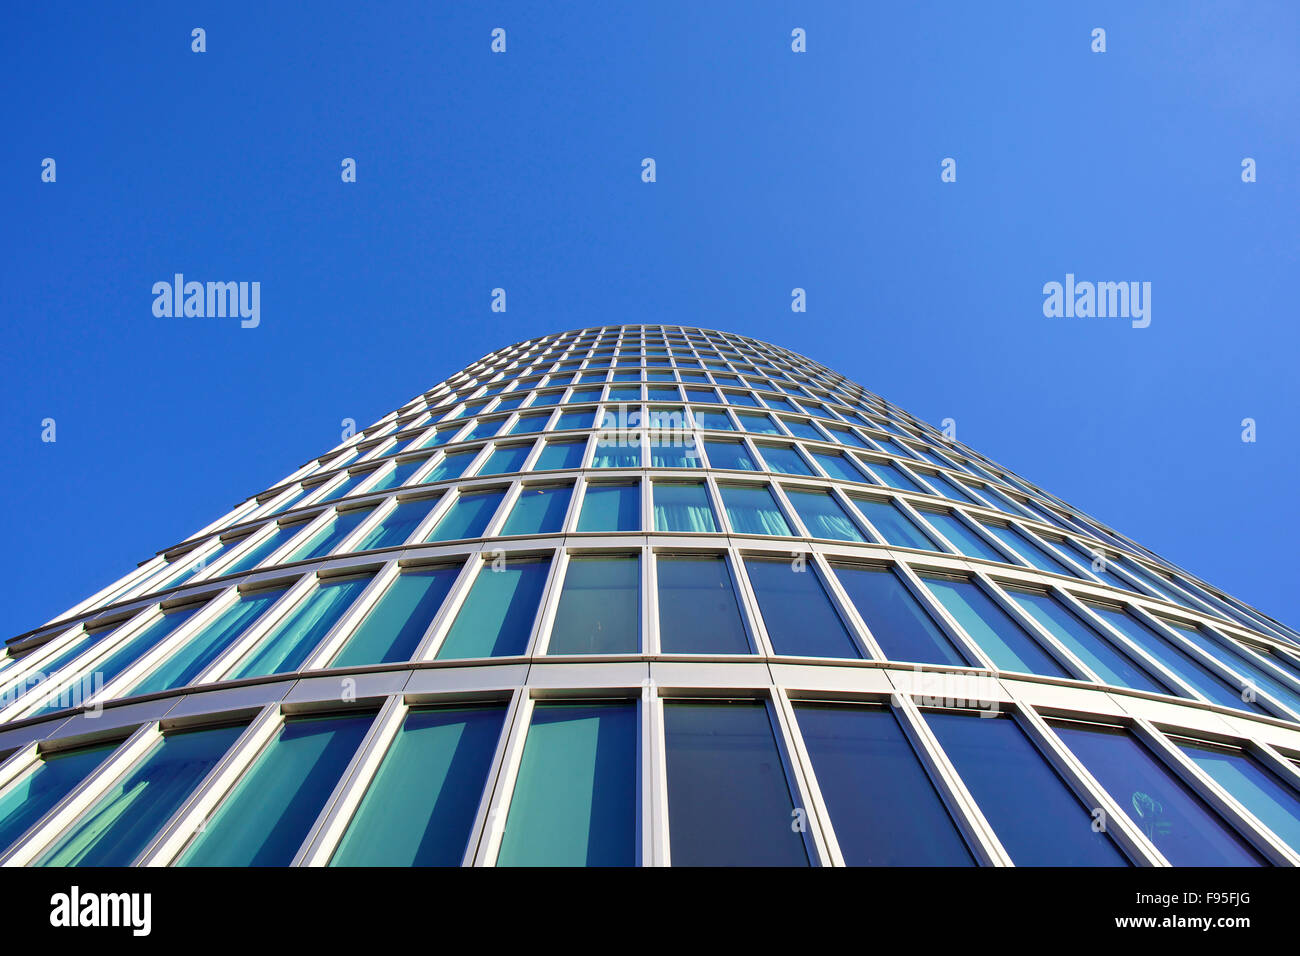 ND2 The Eye, Bristol. View looking up the exterior of The Eye. Contemporary architecture. - Stock Image